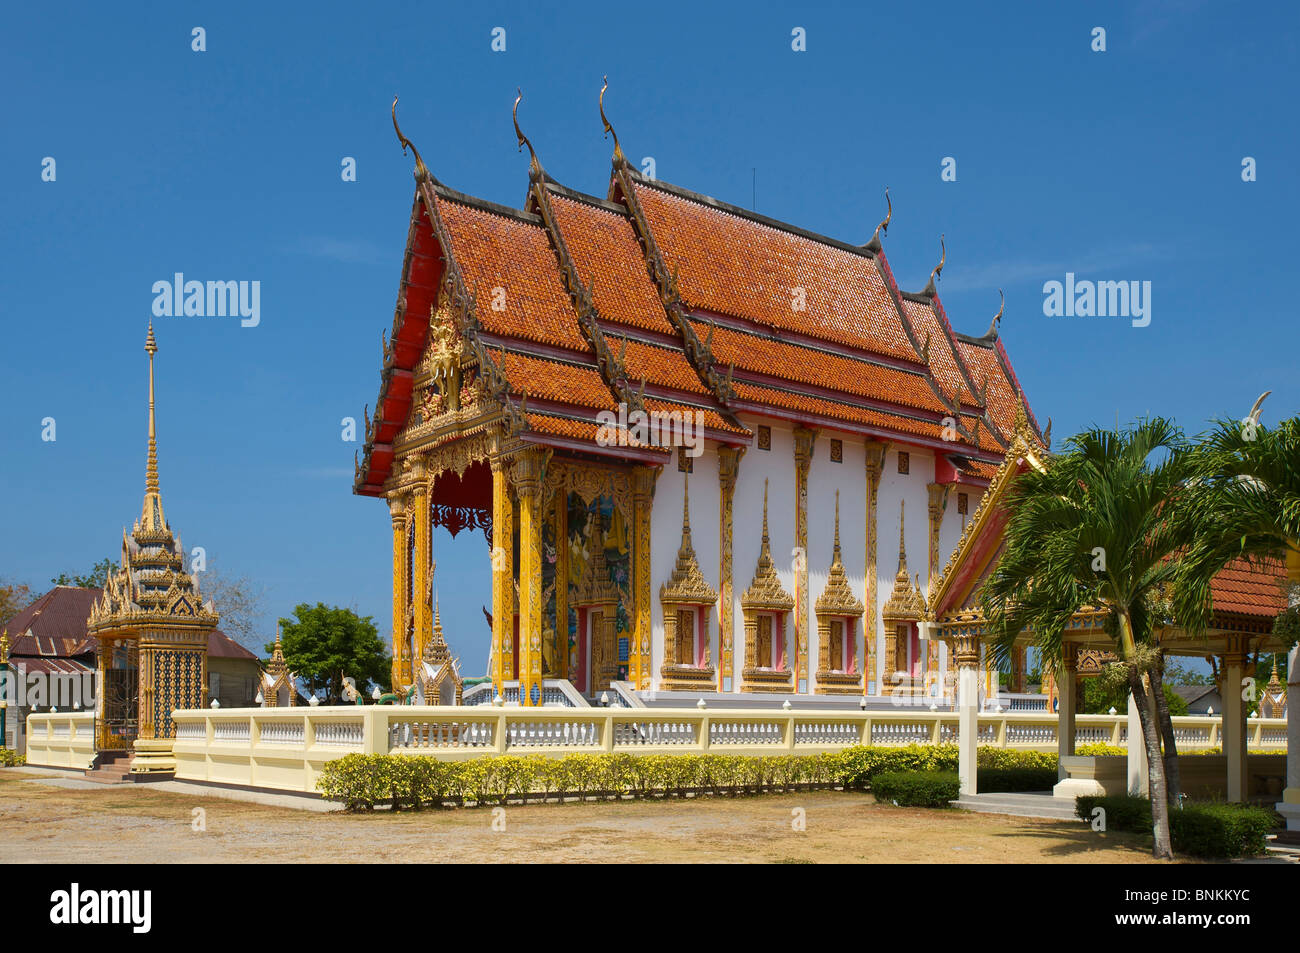 Asia Asian Island Isle Phuket South East Thailand Temple Architecture Building Buildings